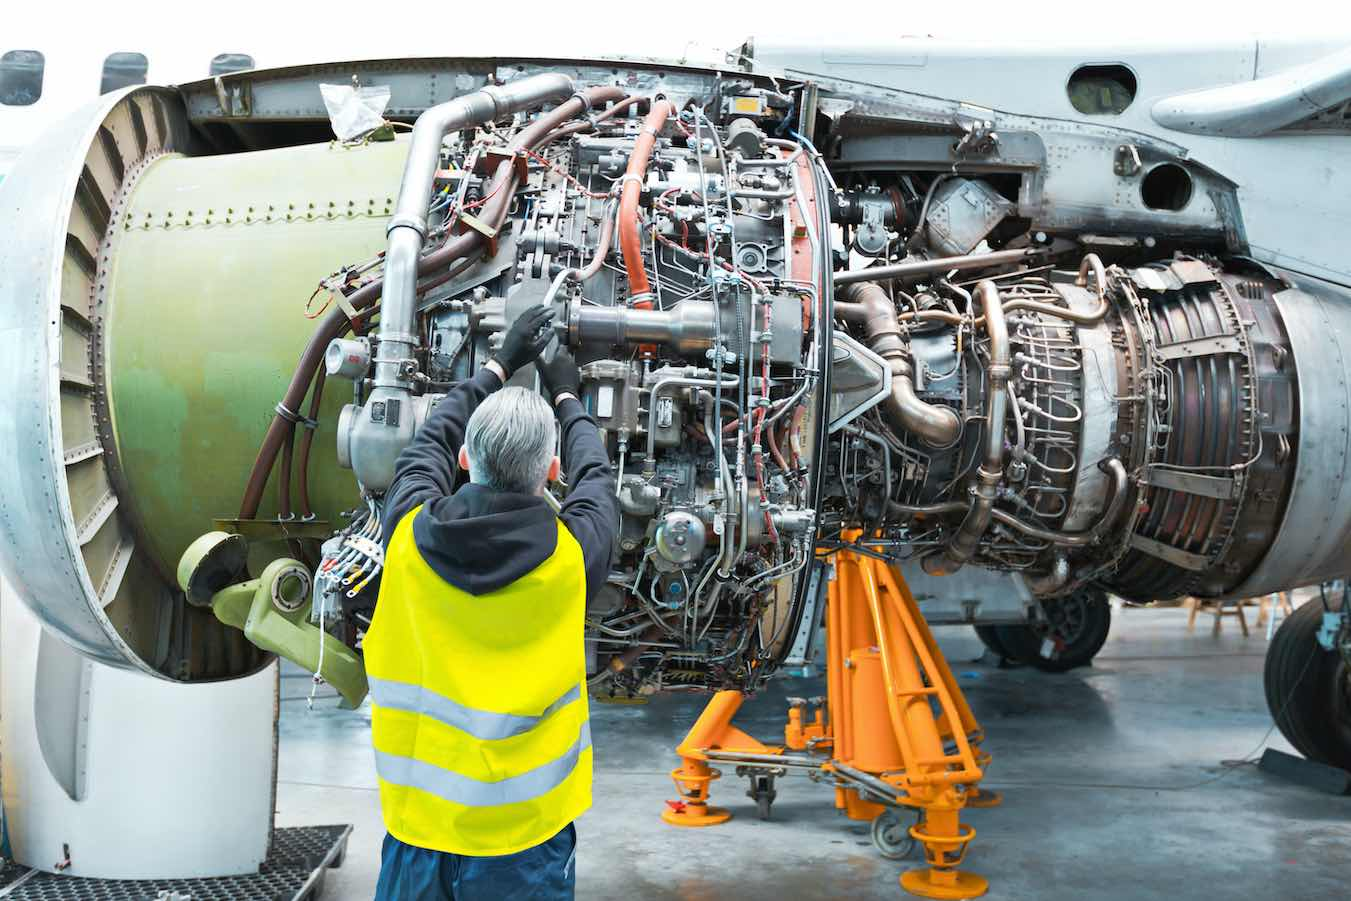 How To Choose An Aircraft Maintenance Course By Jobsinaviation Com